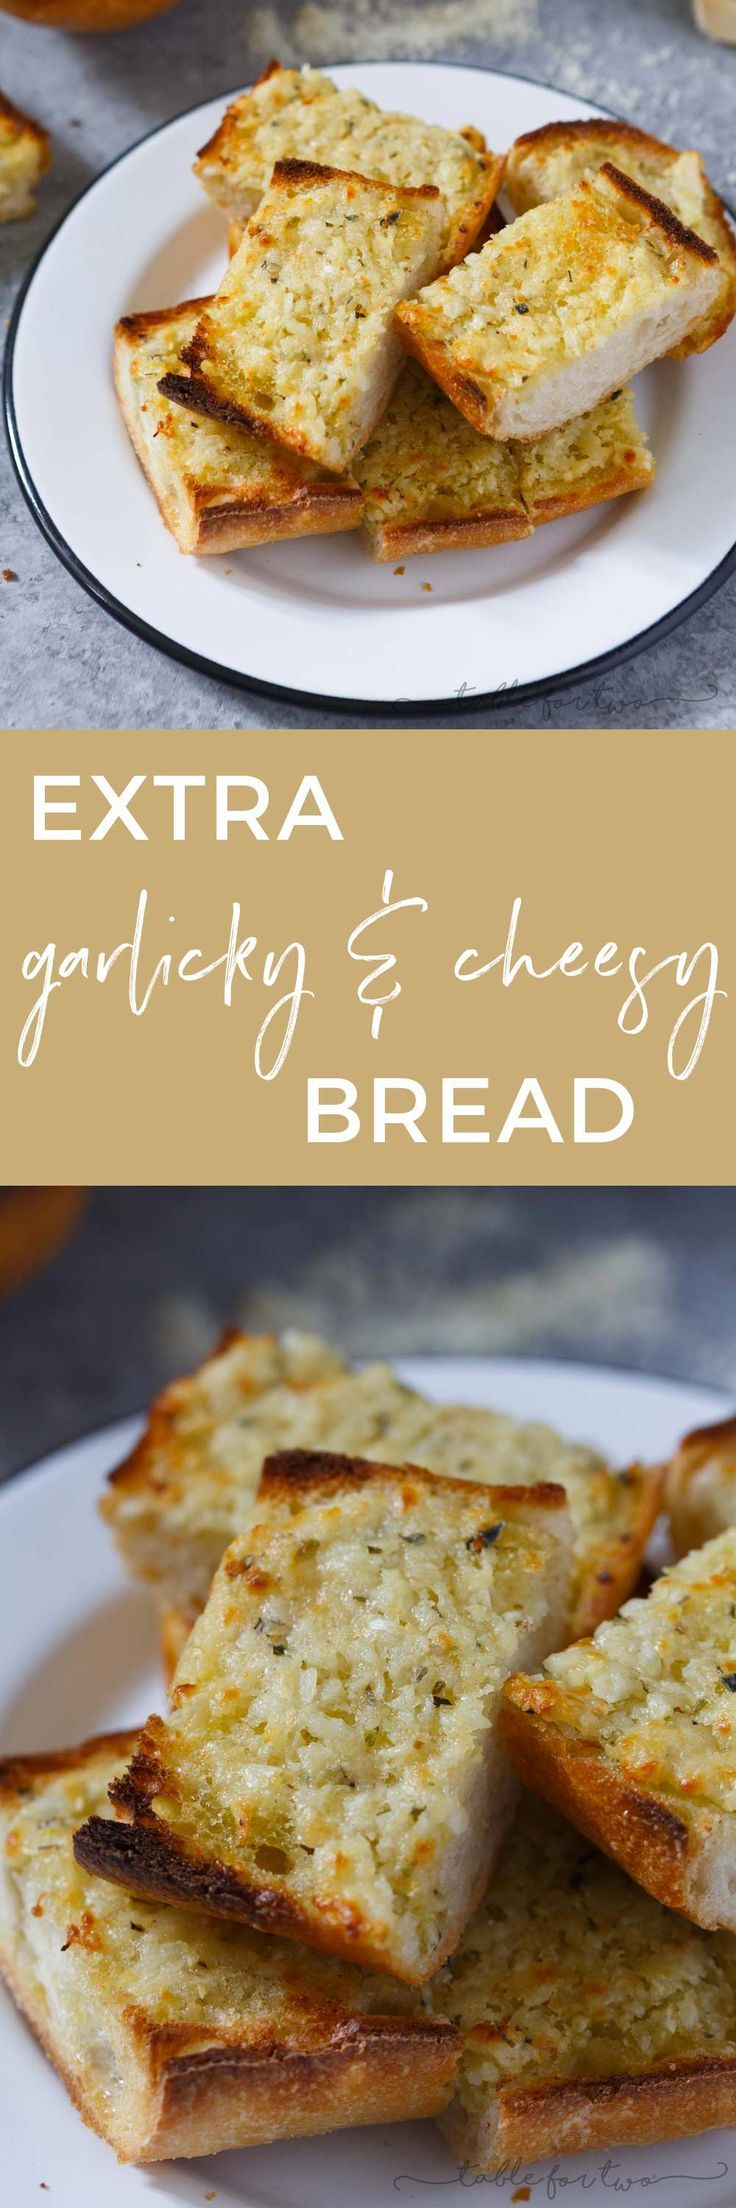 Kiss Me If You Dare Extra Garlicky And Cheesy Bread Best Garlic Bread Recipe Recipes Cheesy Bread Savoury Food